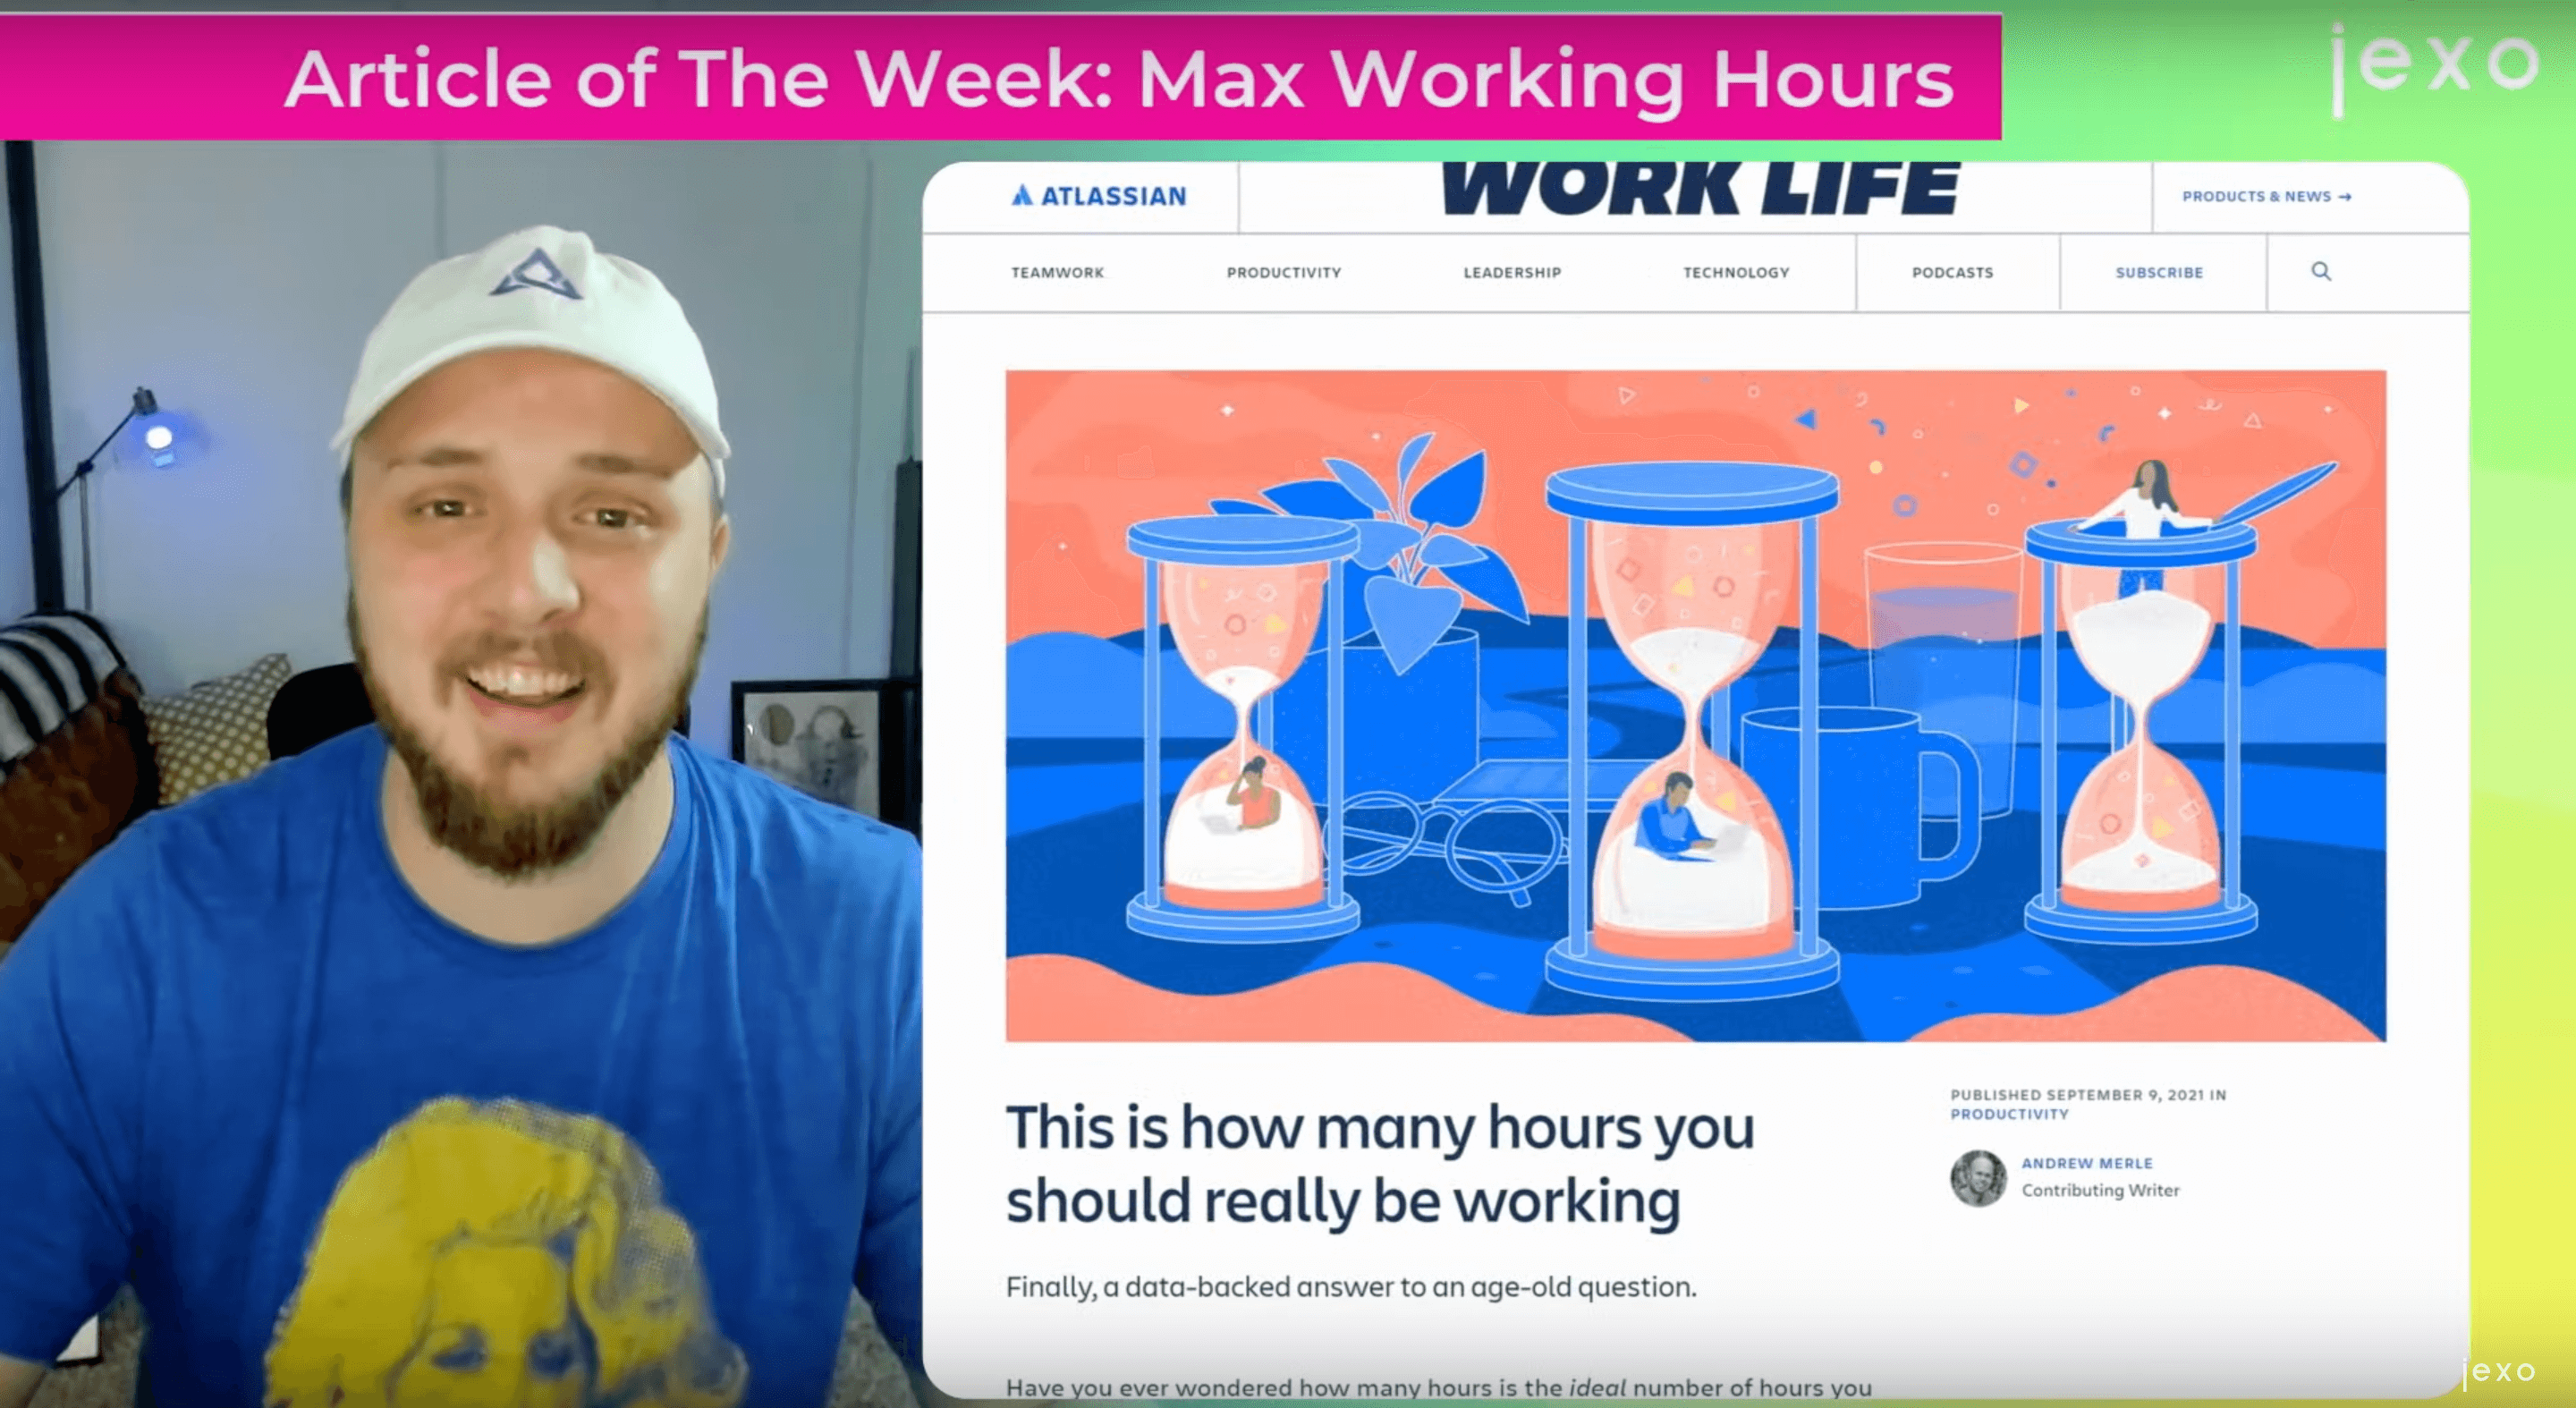 Atlassian article of the week: How many hours you should work?